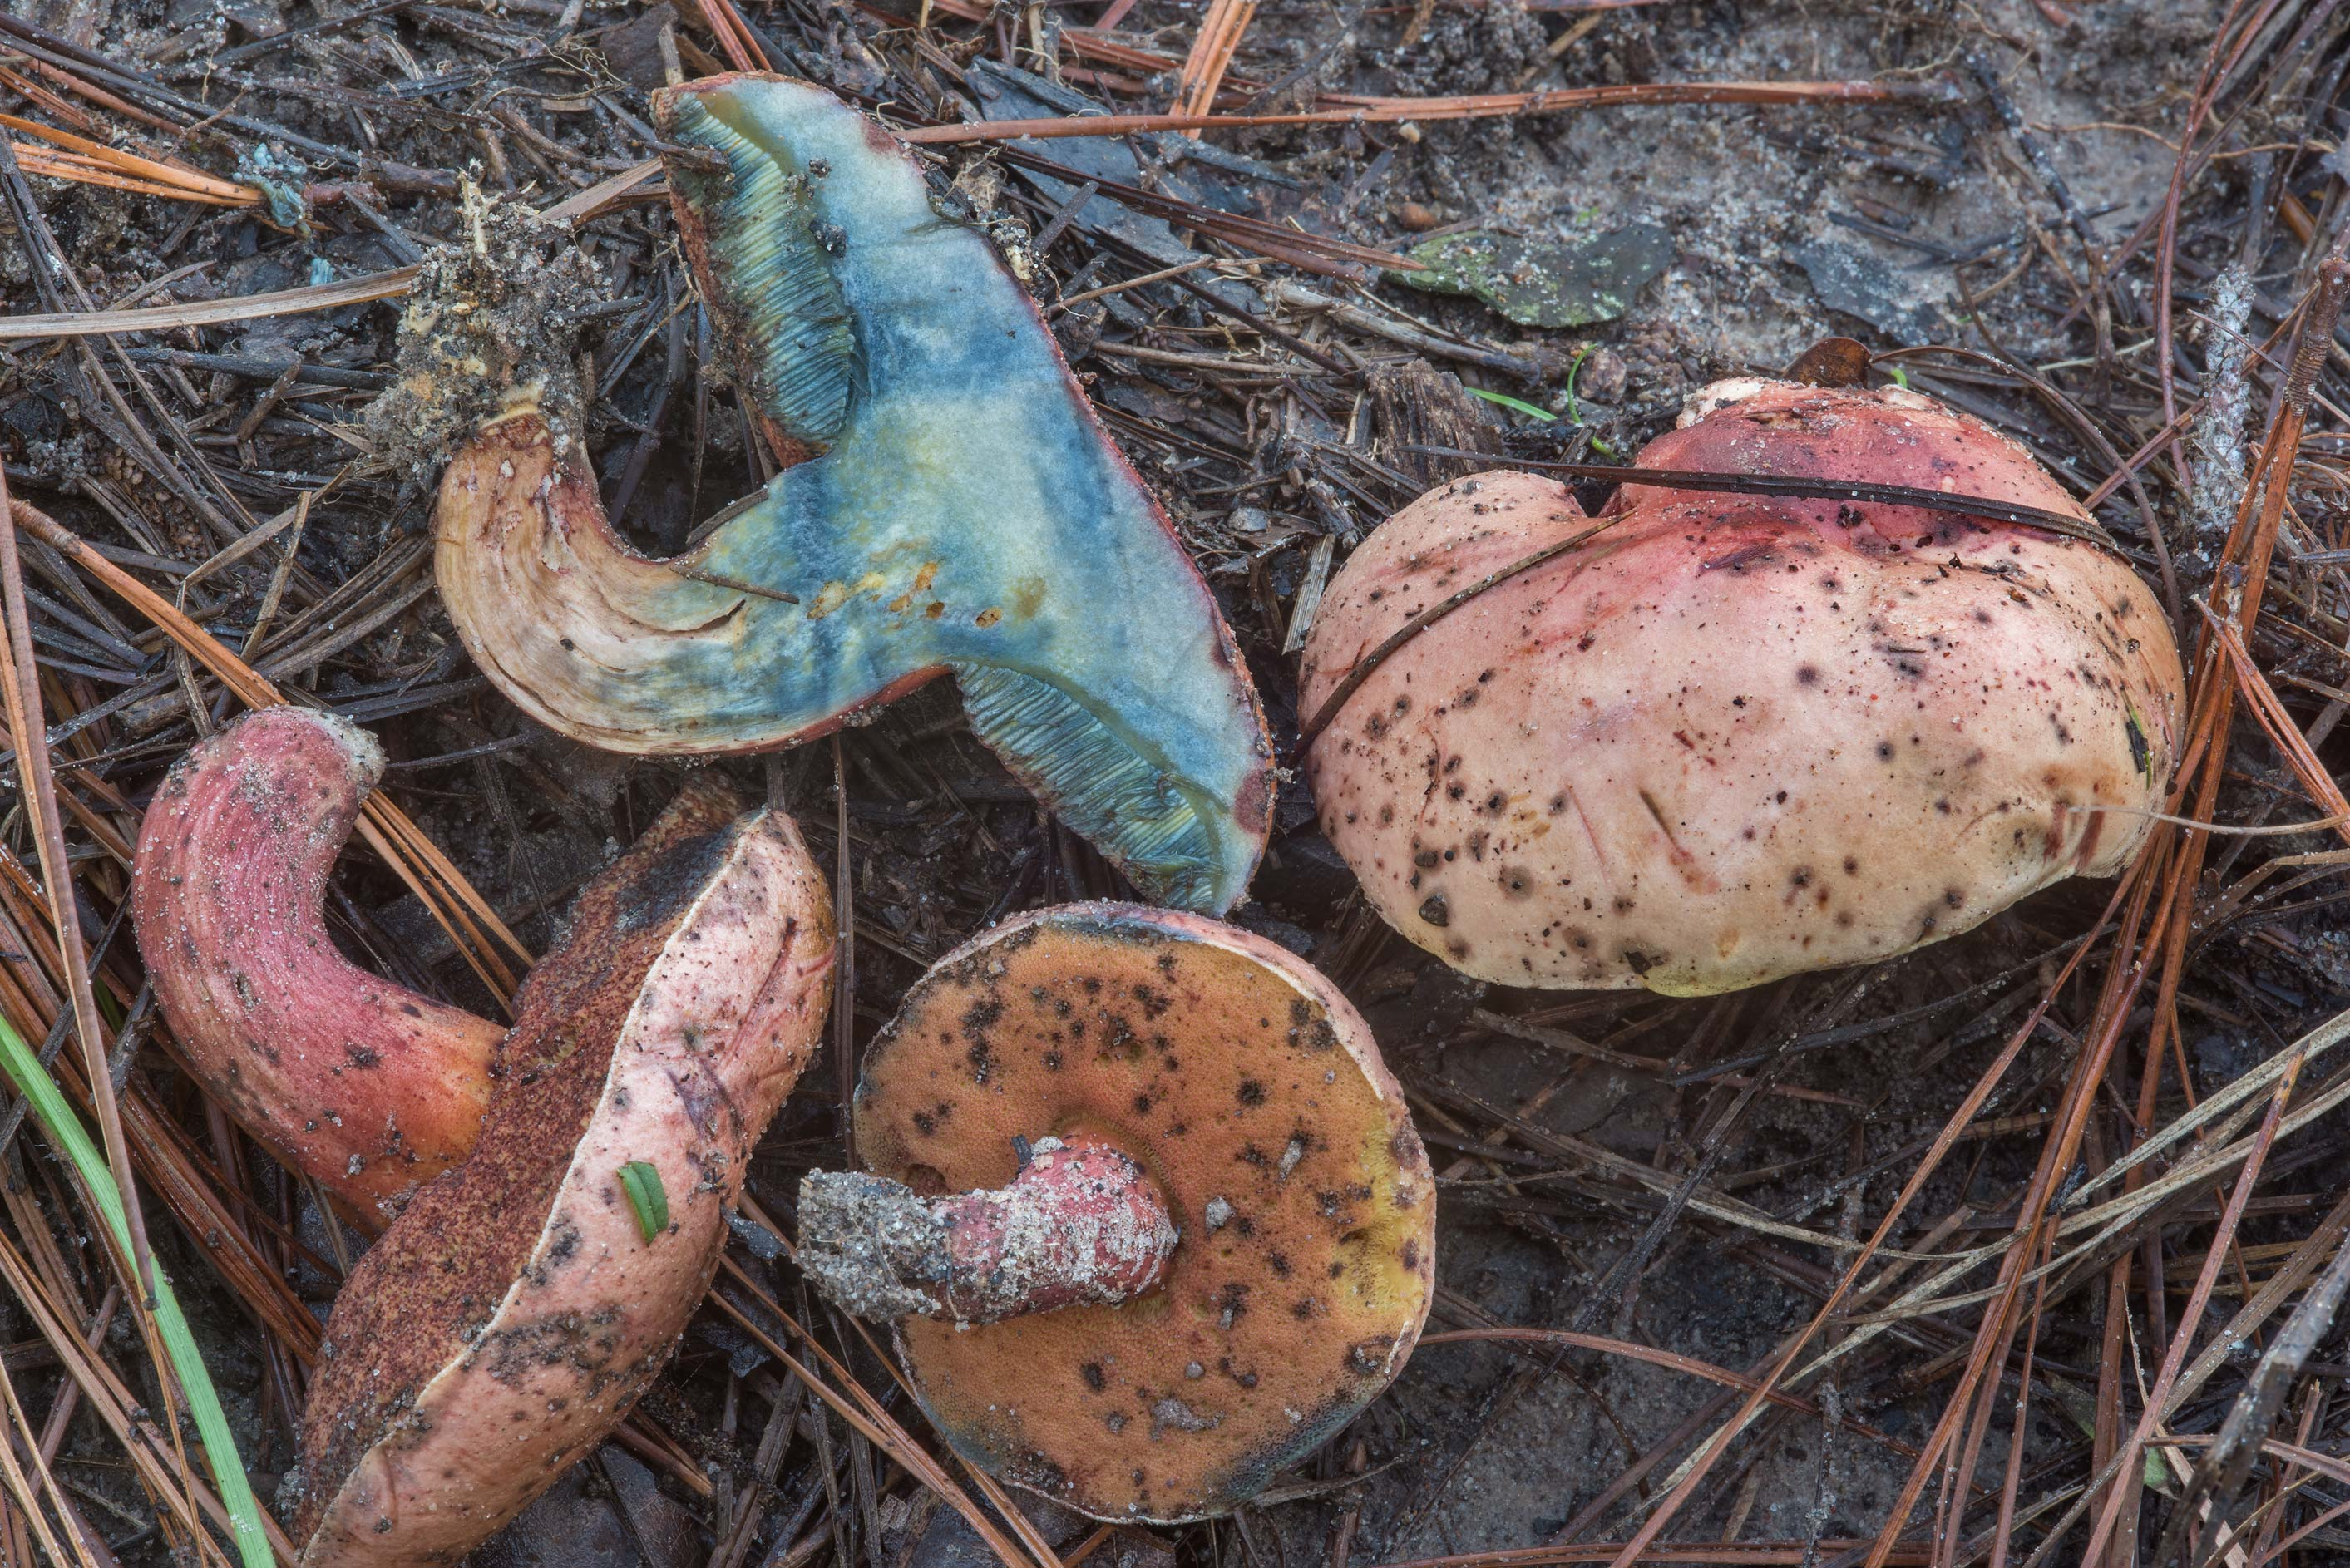 Dissected purple bolete mushrooms on Little Lake...National Forest. Richards, Texas